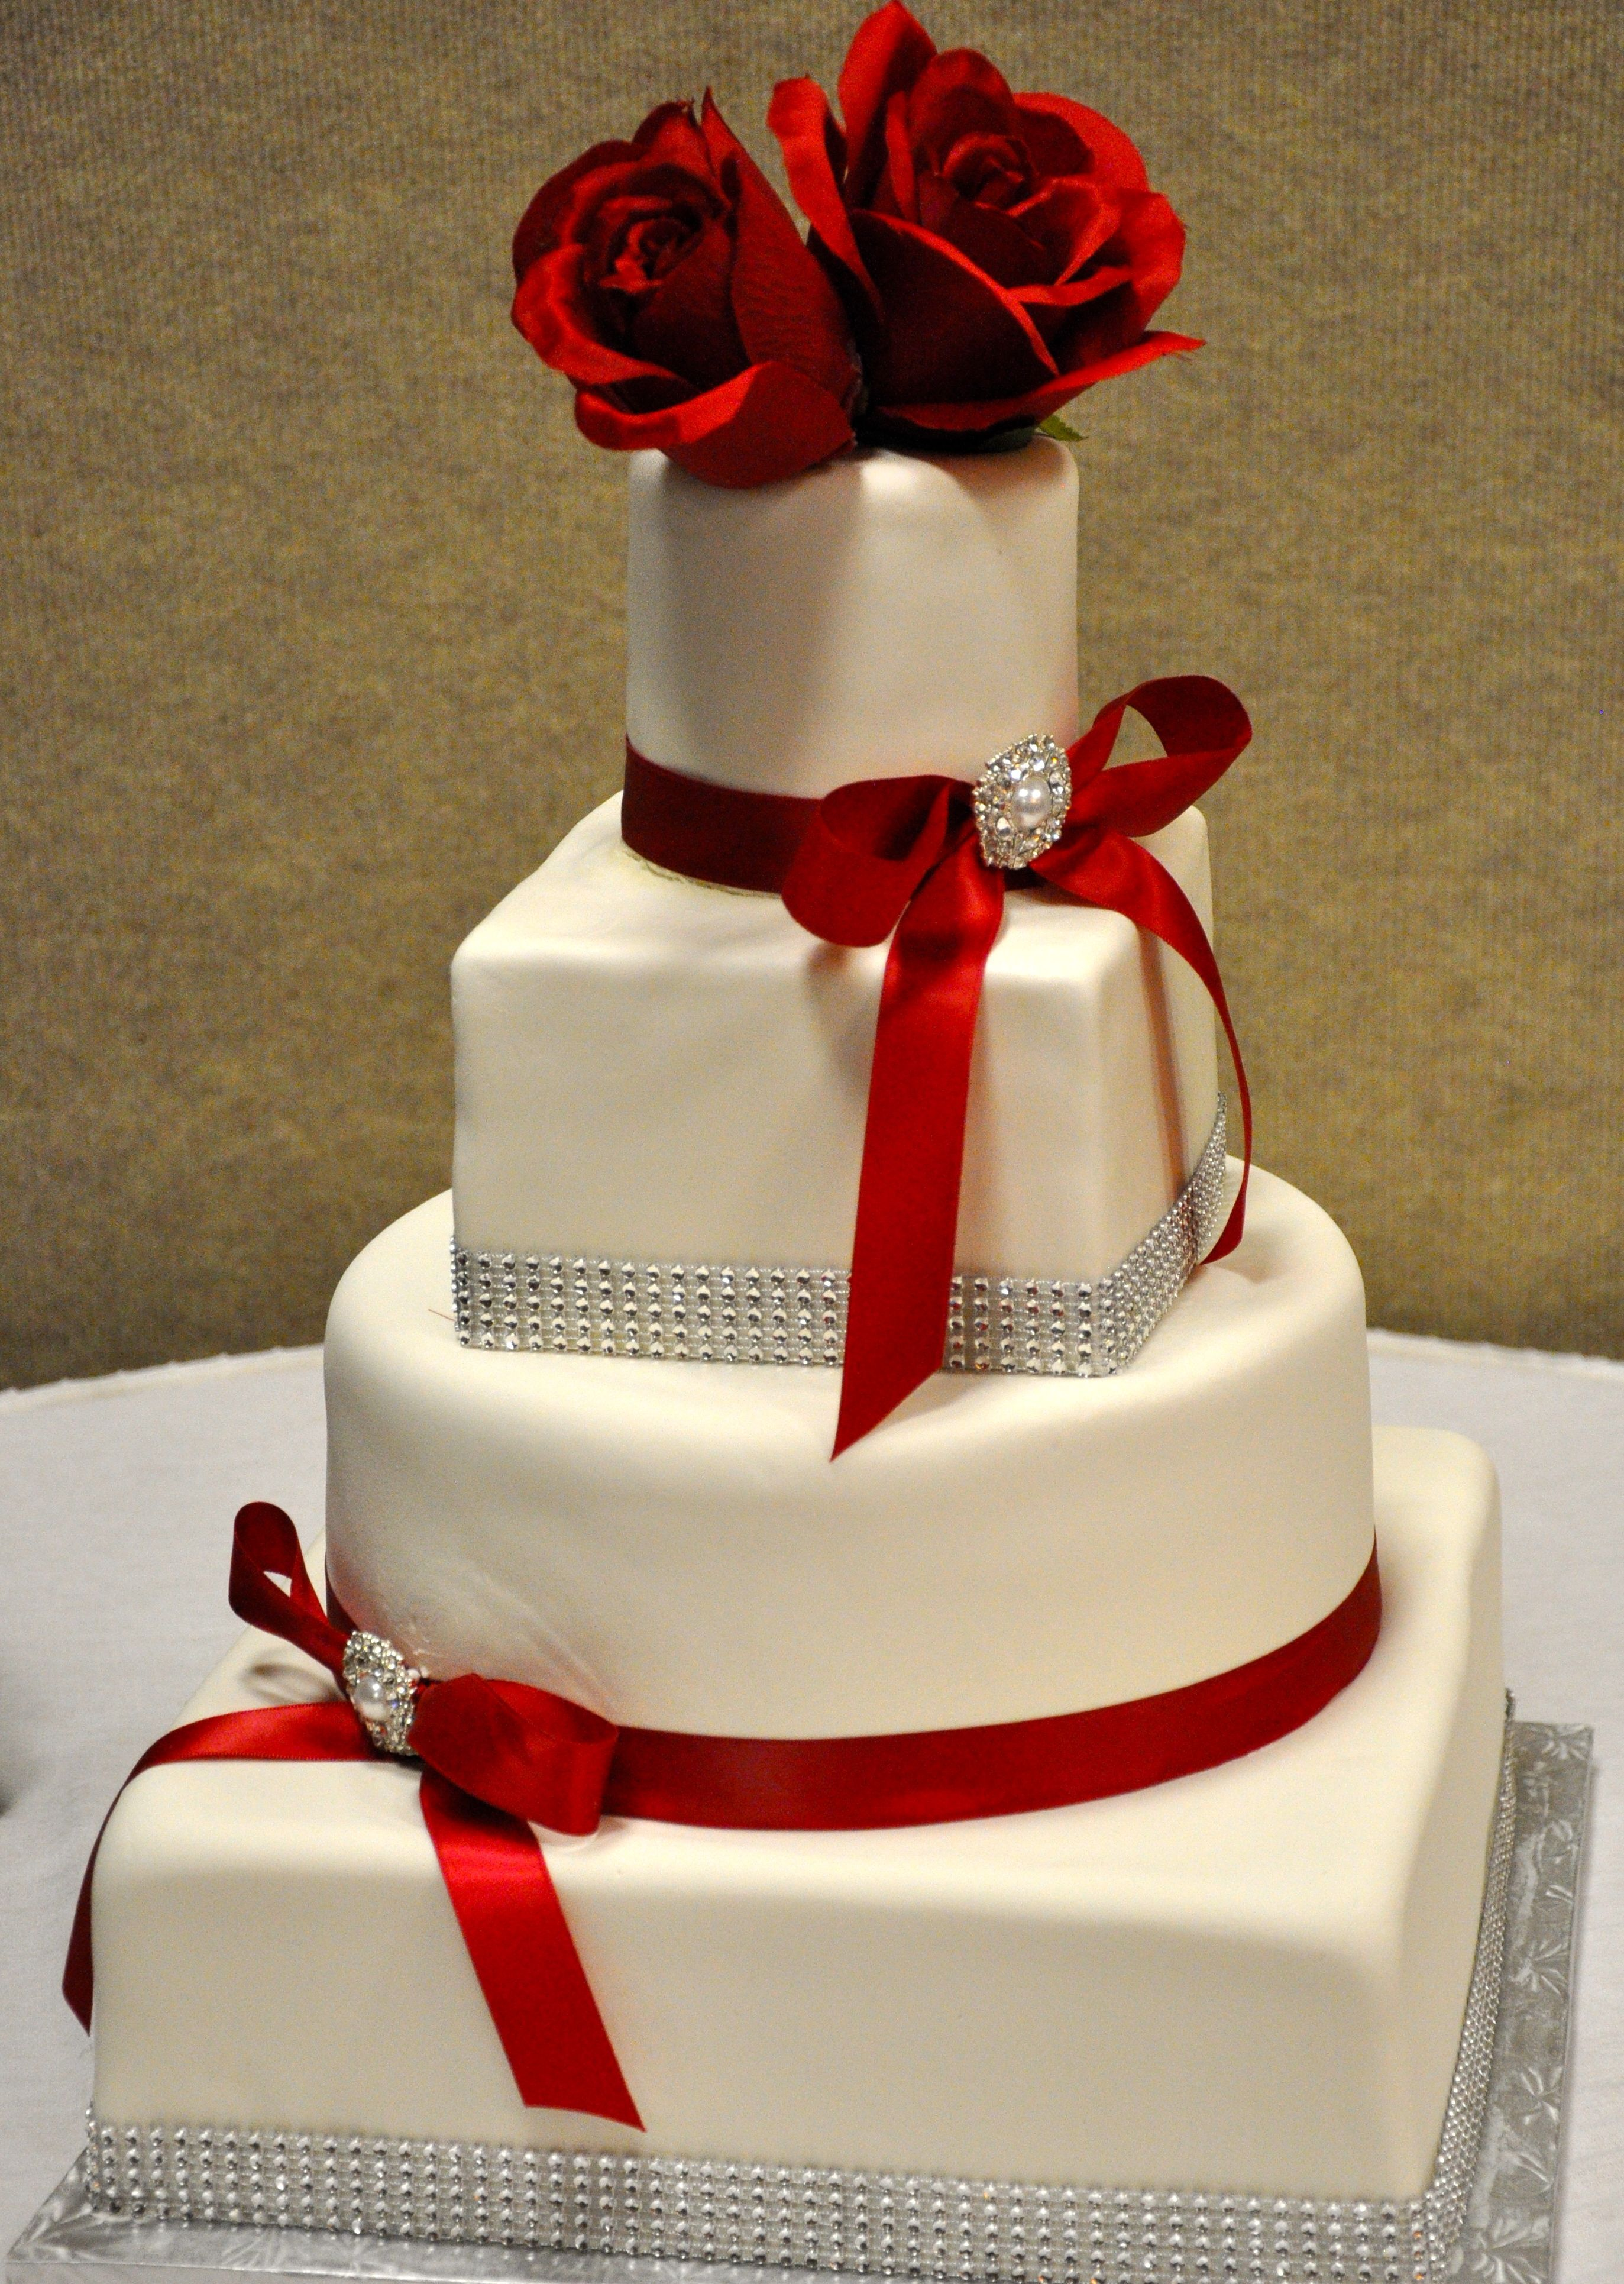 Three Tier Wedding Cake With Red Flowers And Red Ribbon